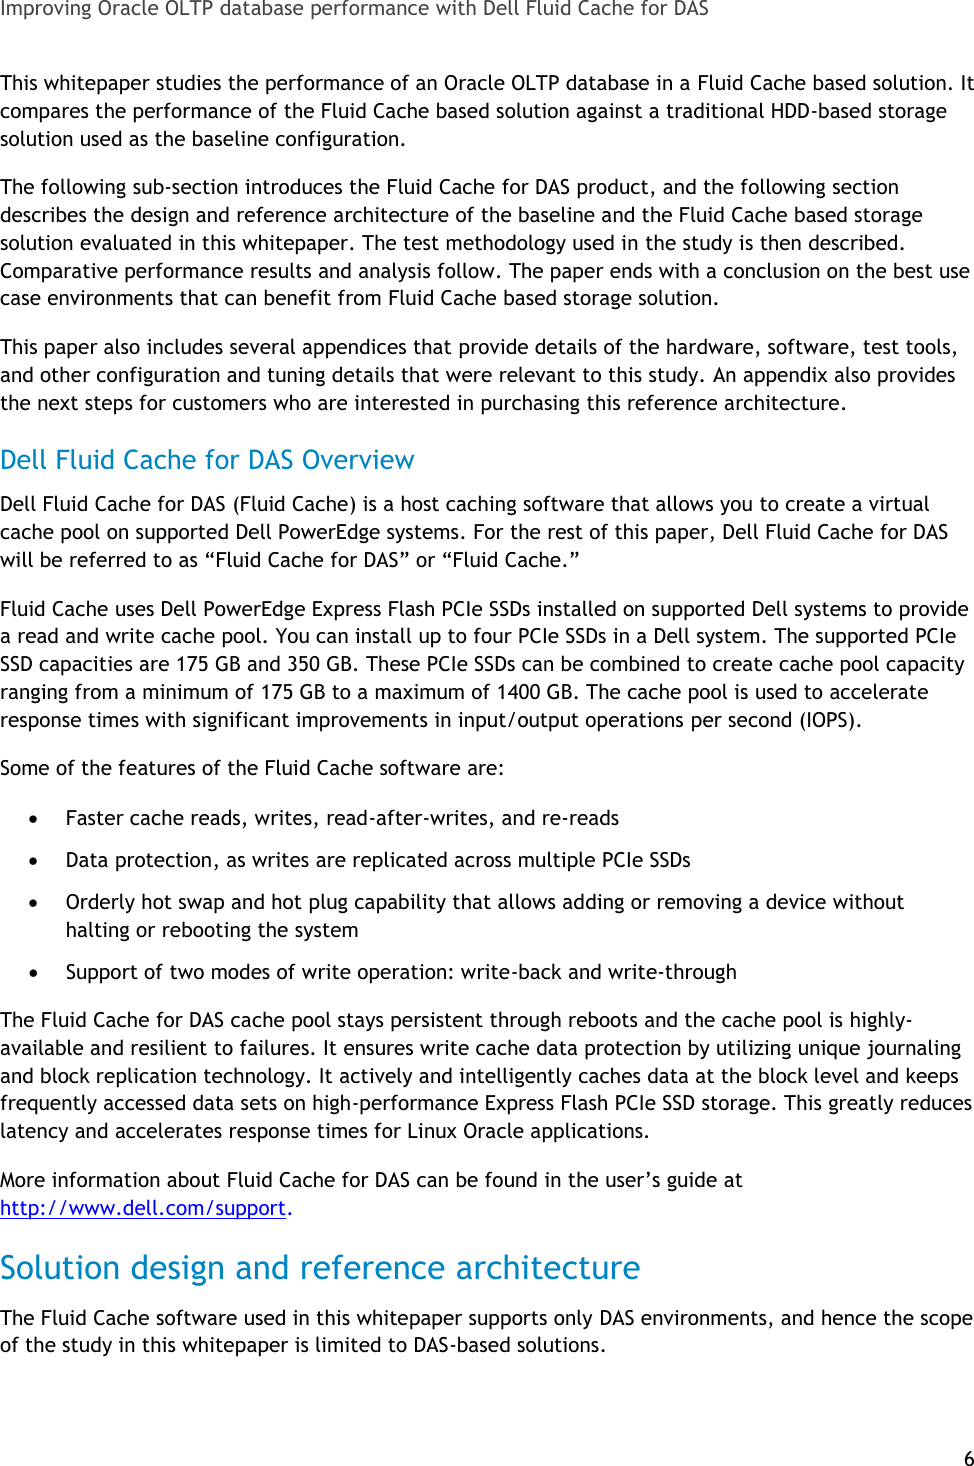 Dell Fluid Cache For Das Troubleshooting Improving Oracle OLTP